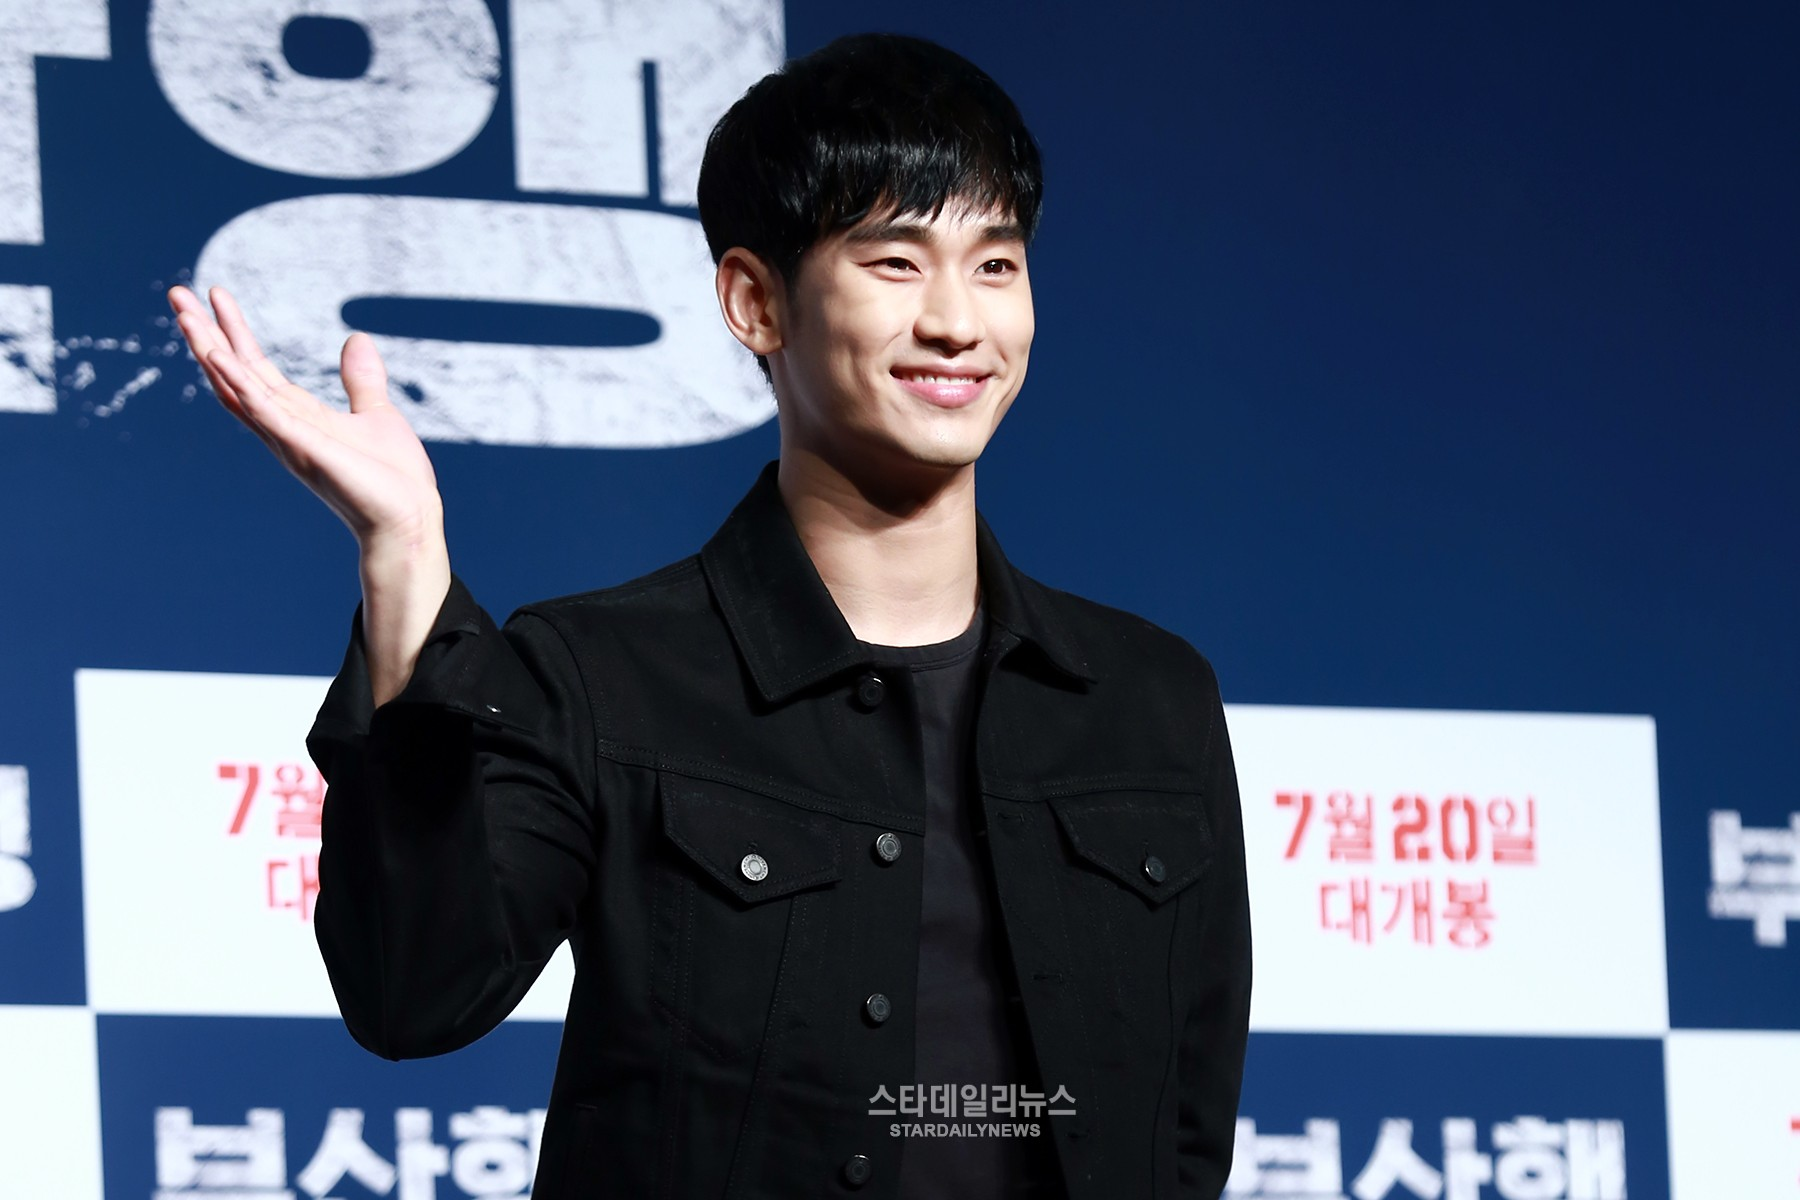 Kim Soo Hyun Proves Immense Popularity In China With CF Deals